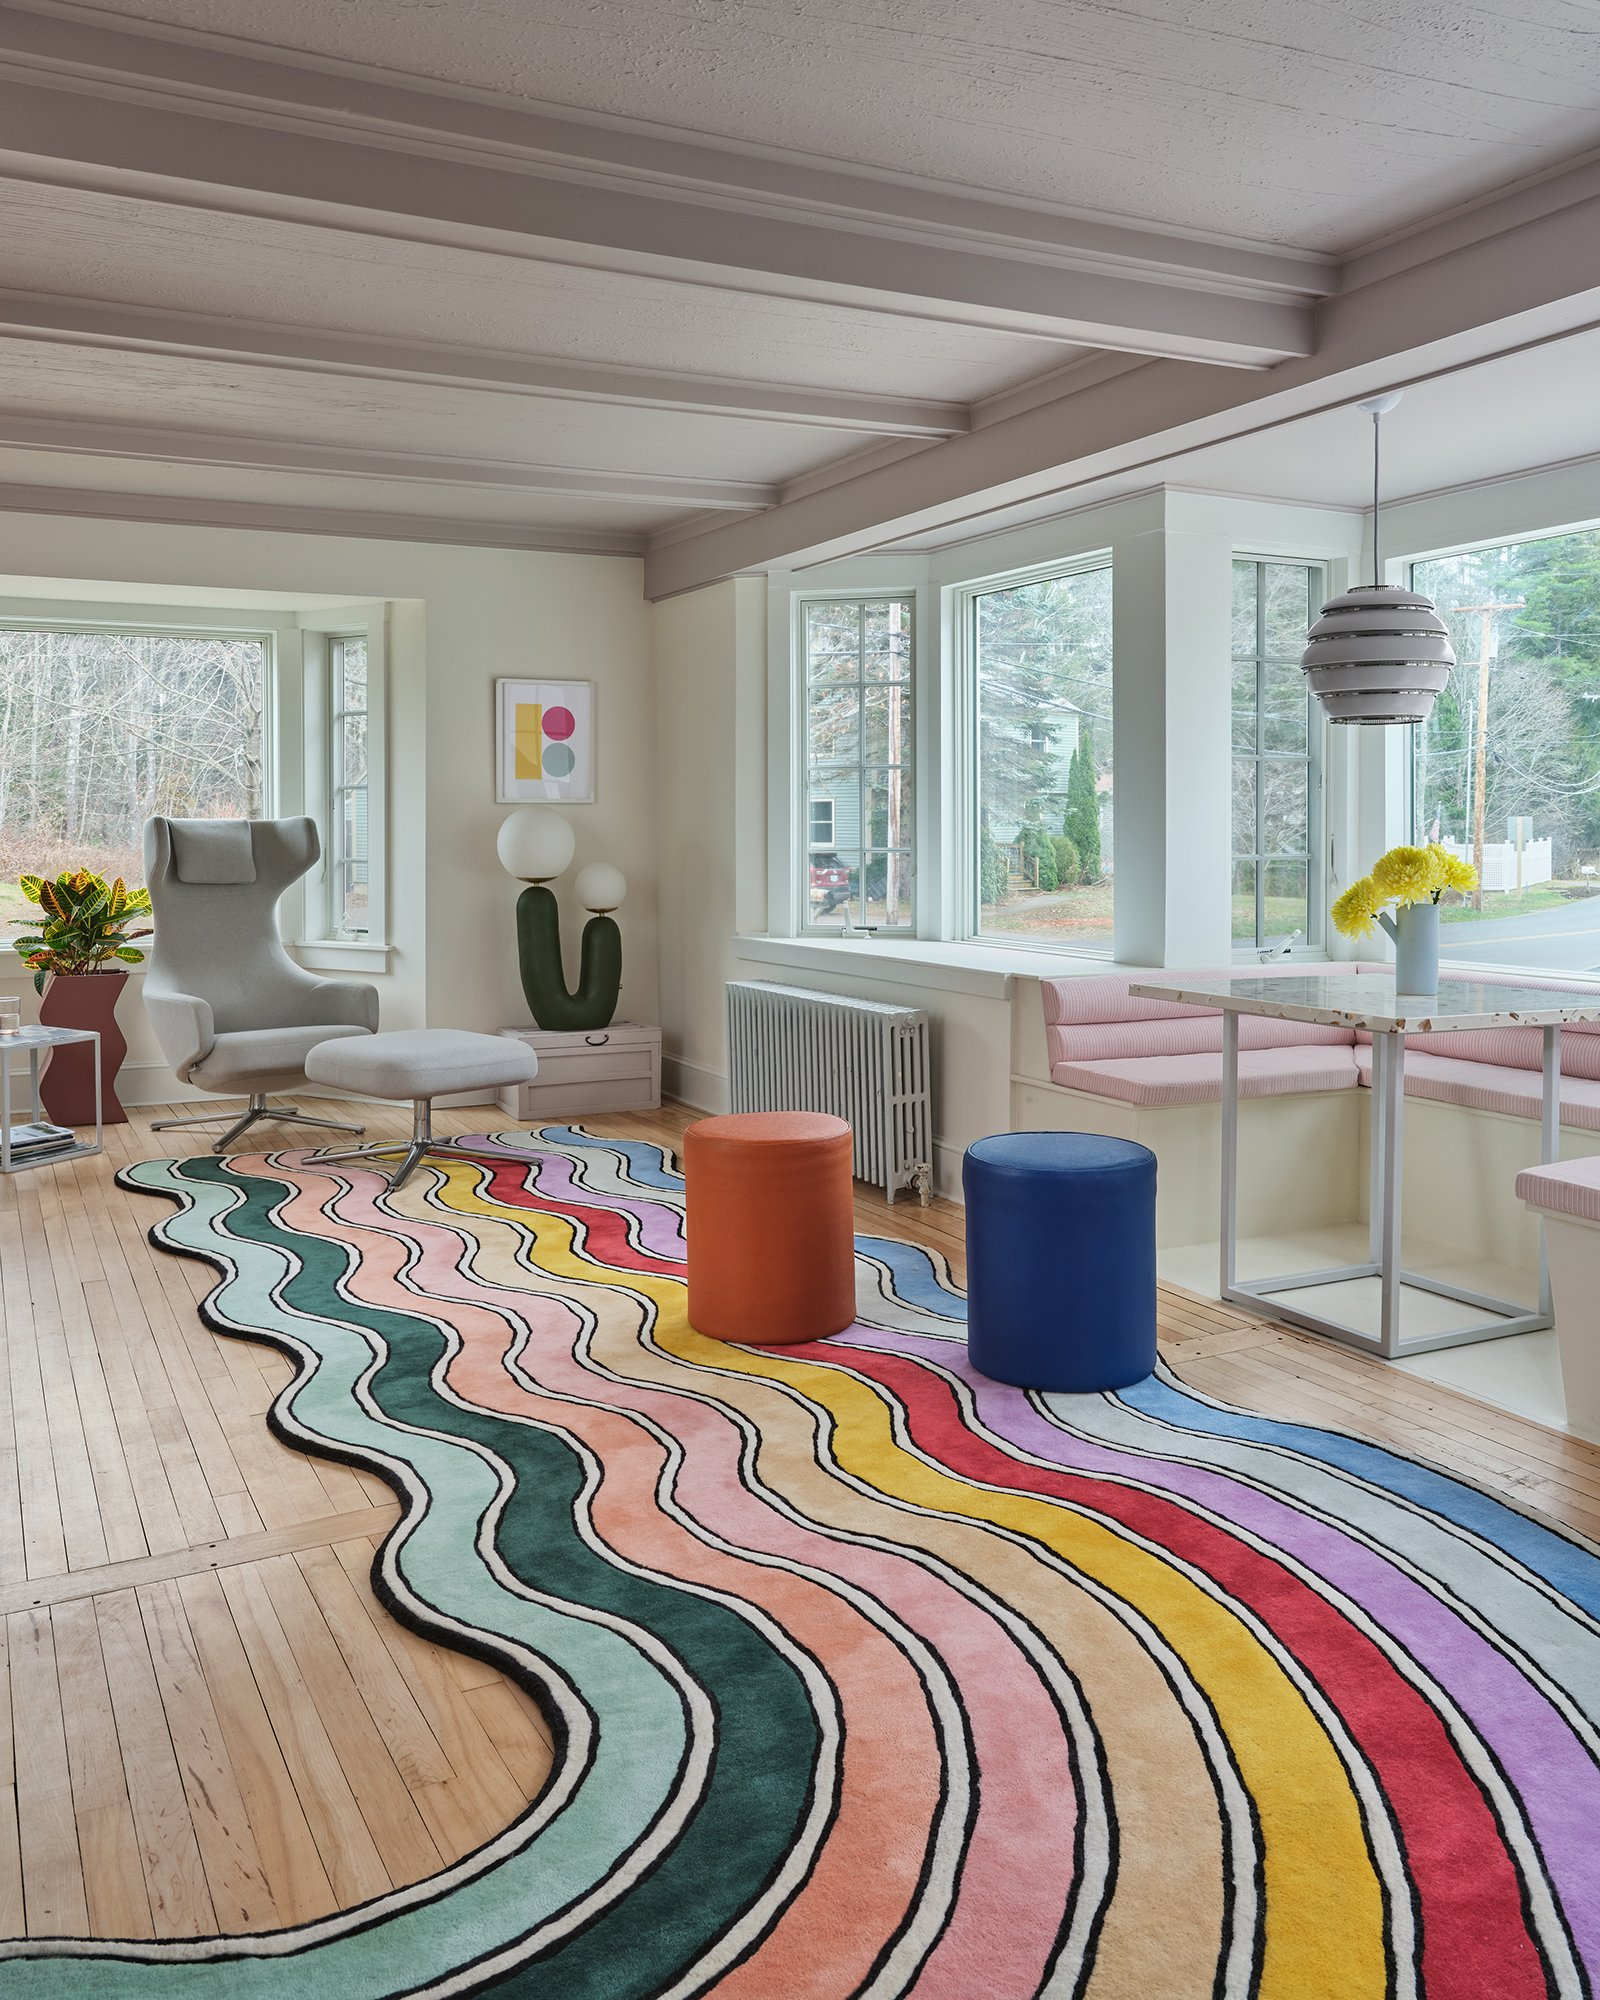 An Aesthetic Pursuit, Pieces home vacation rental in Kennebunk, Maine